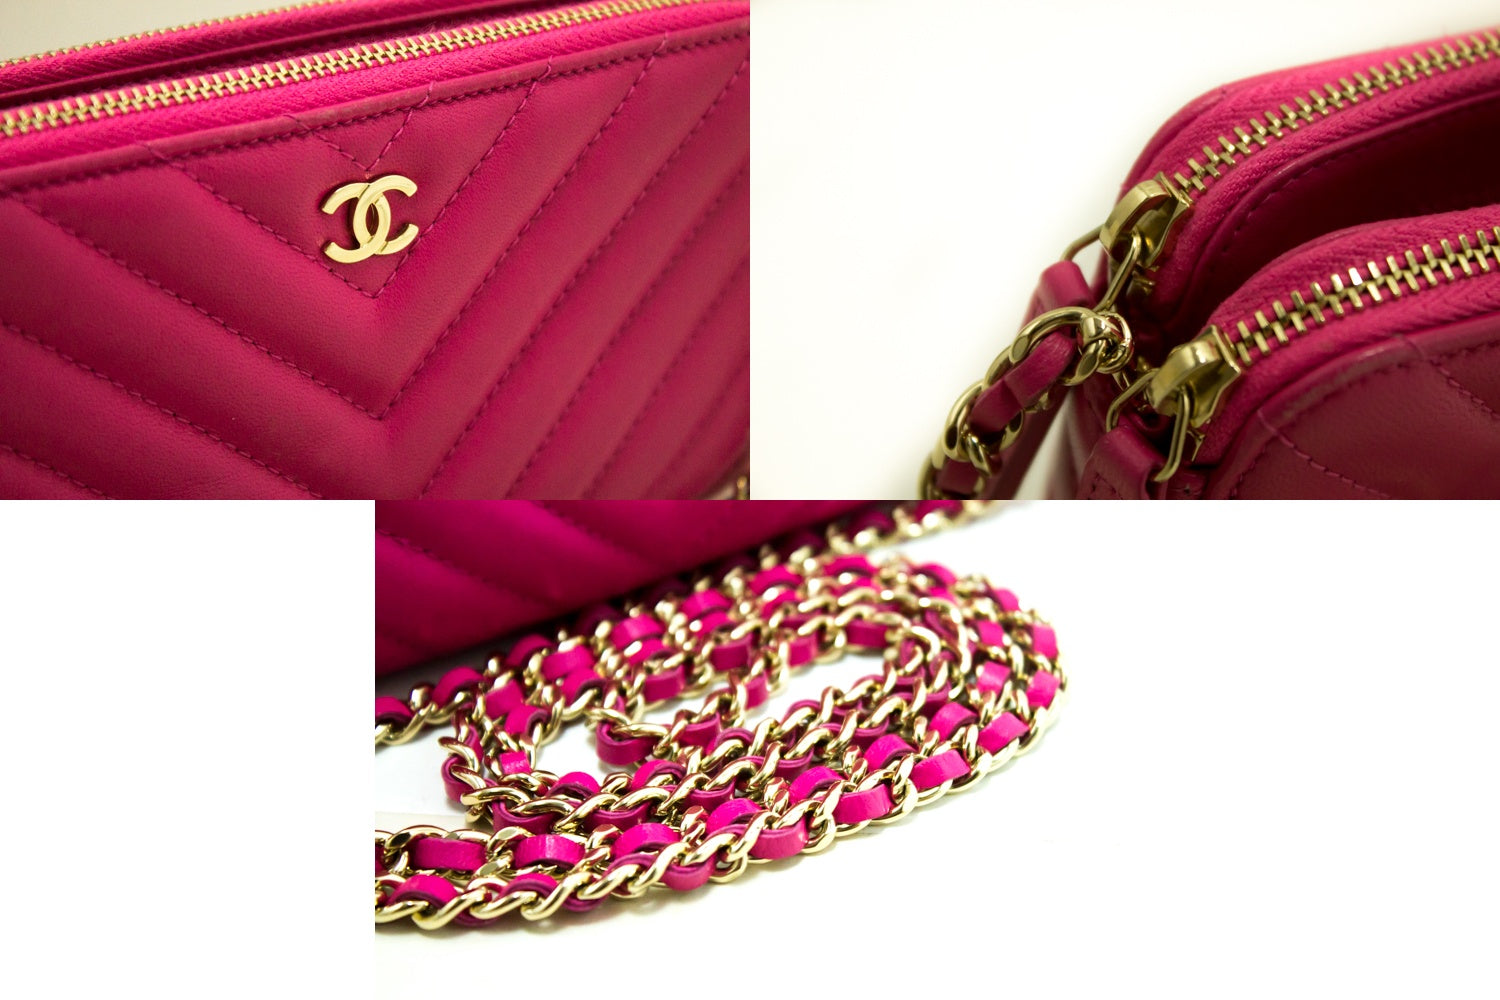 e7b6ac8a55be ... CHANEL Hot Pink Wallet On Chain WOC Double Zip Chain Shoulder Bag m69- Chanel- ...